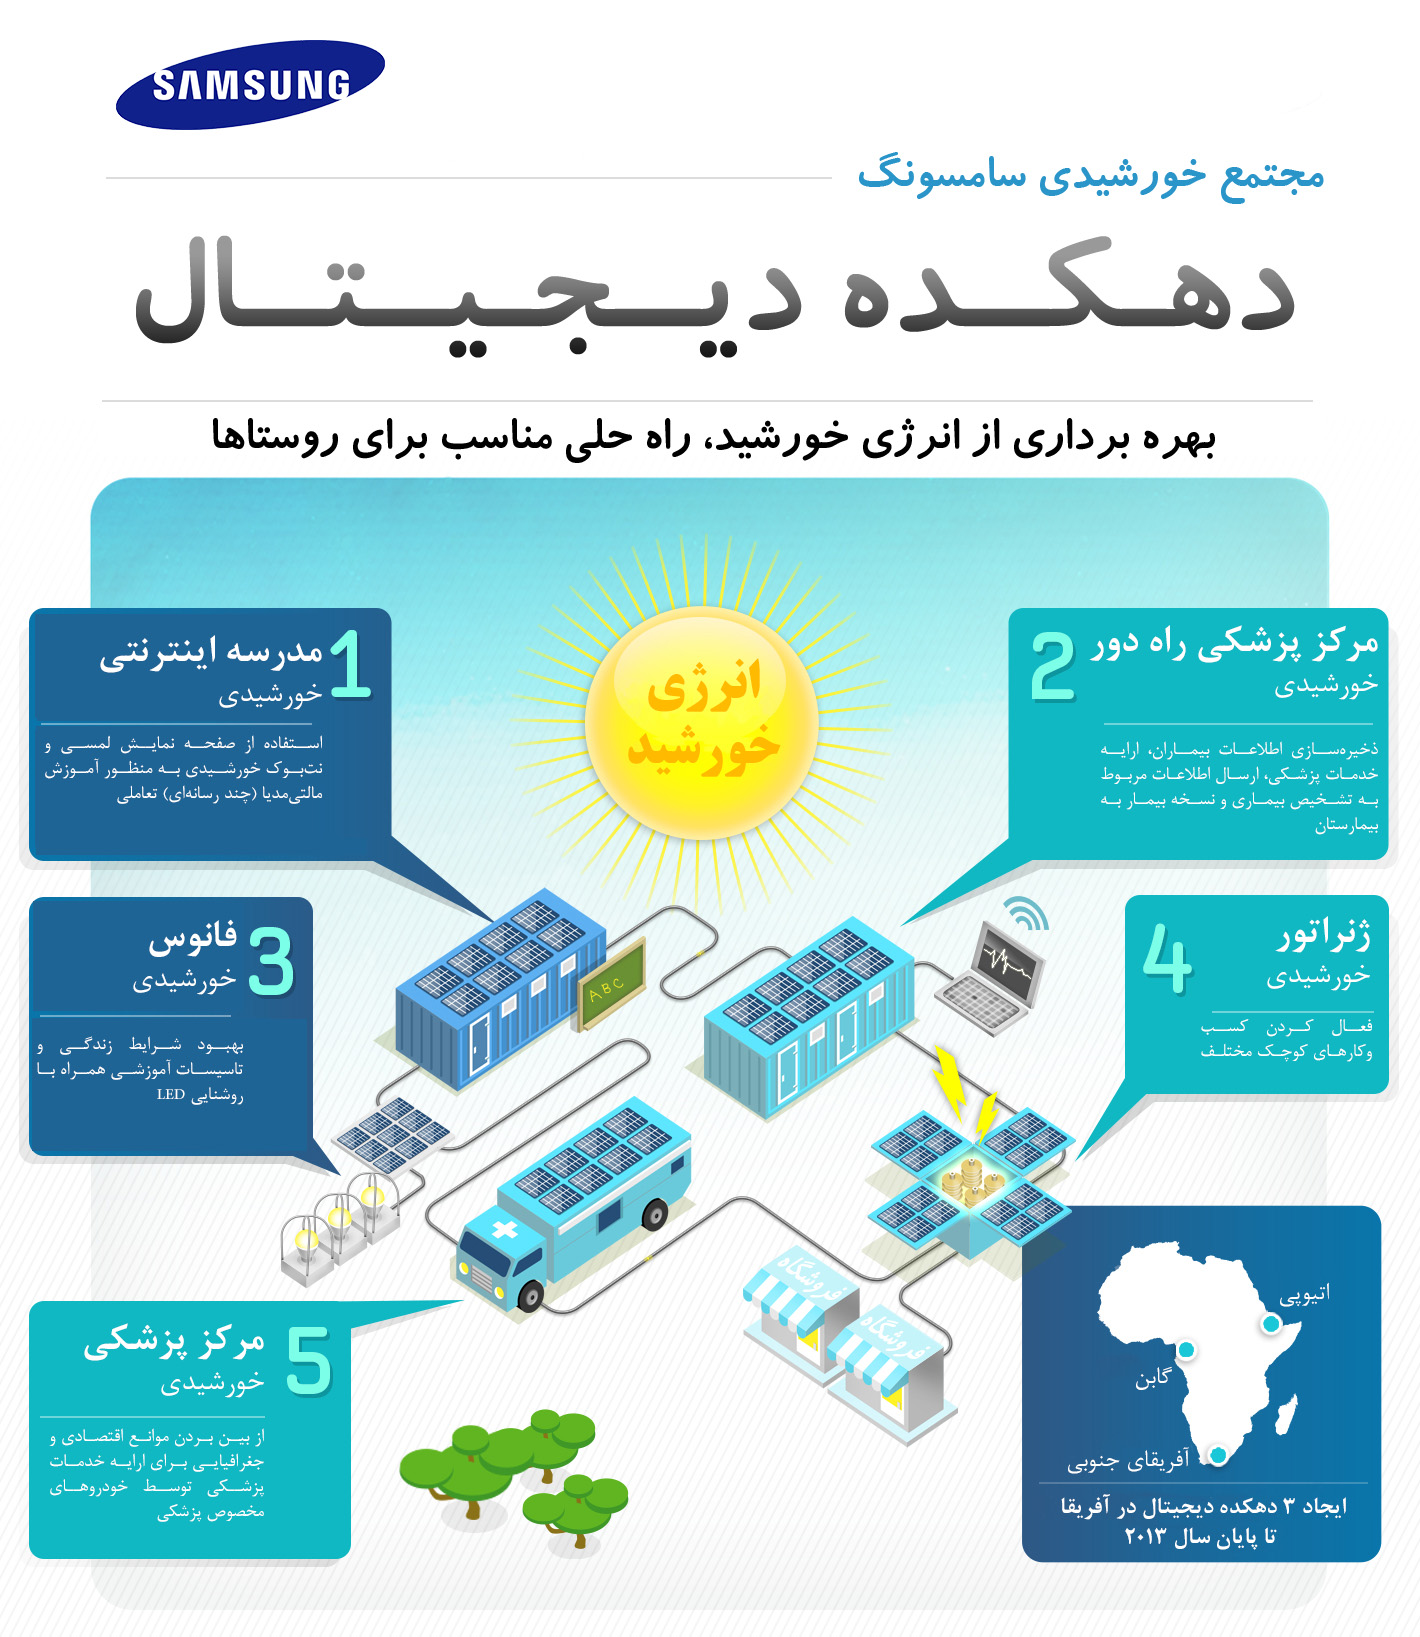 [Infographic] Digital Village Part 1 - Farsi